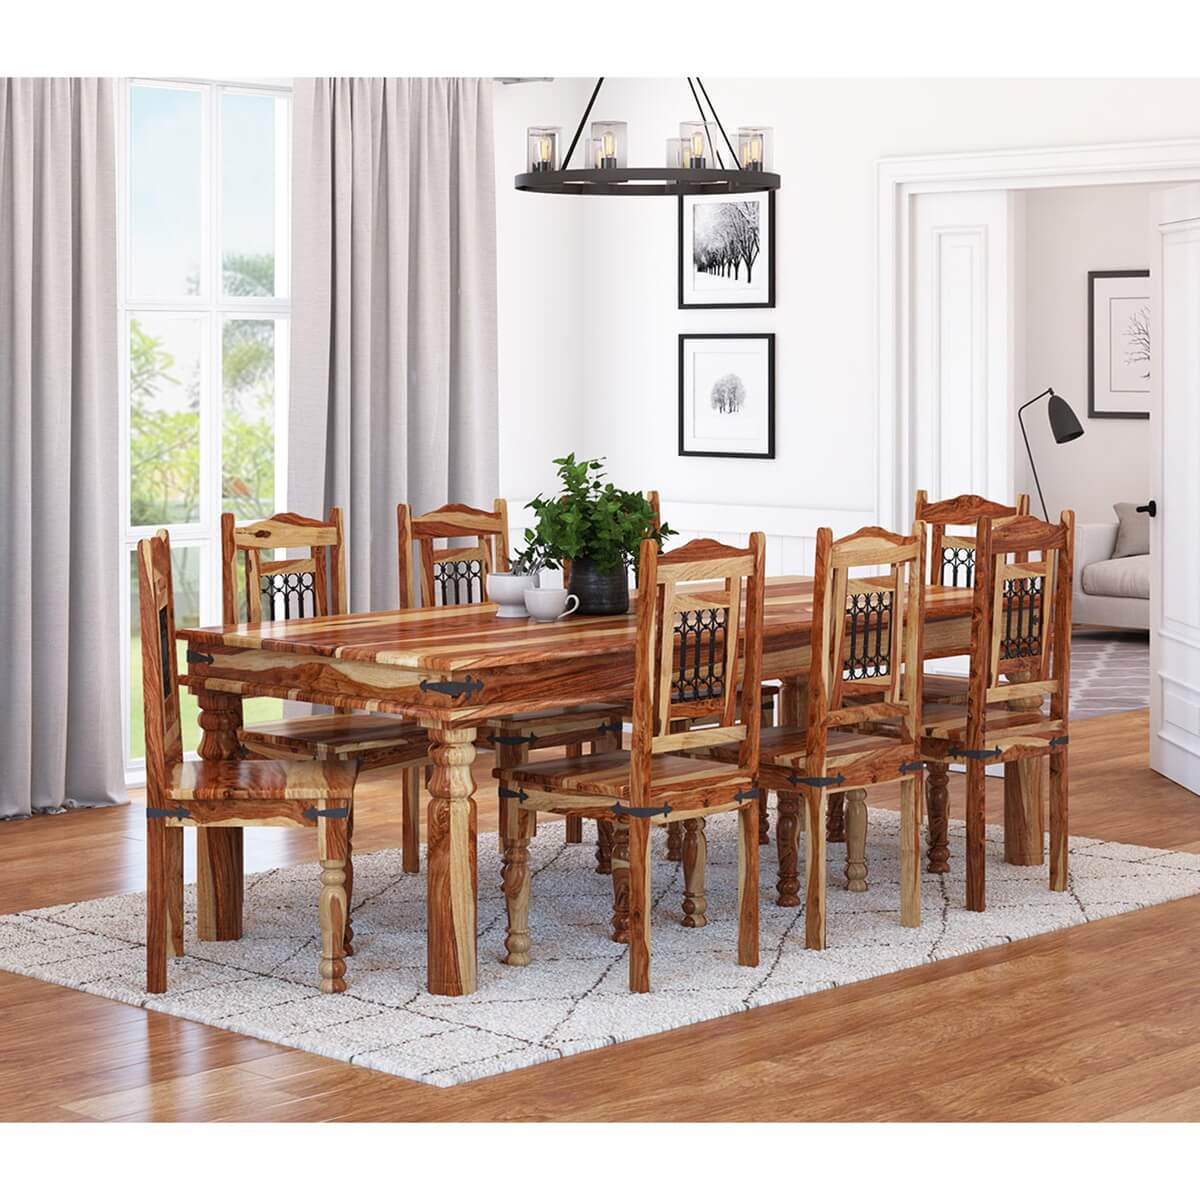 Dallas classic solid wood rustic dining room table and for Dining room table and chair sets